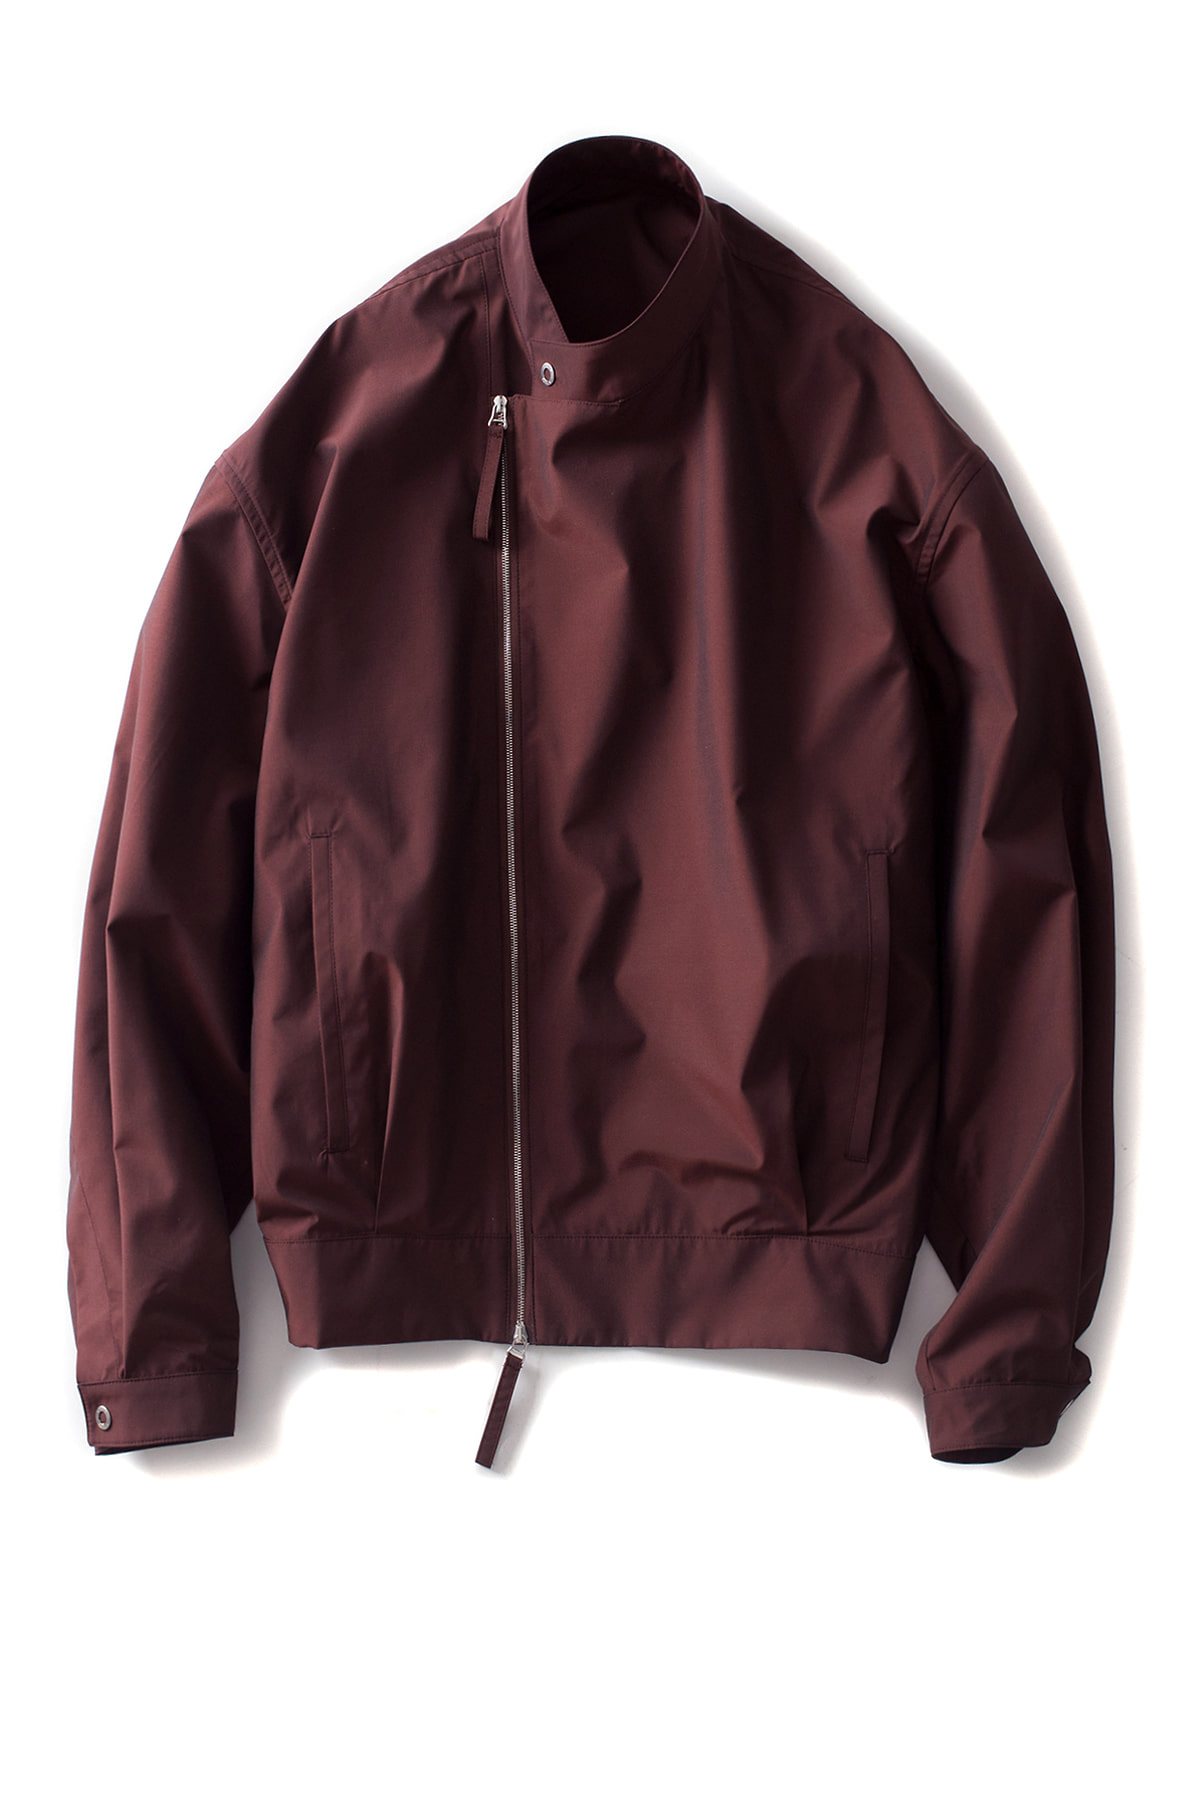 E. Tautz : Jeremy Jacket (Brick)